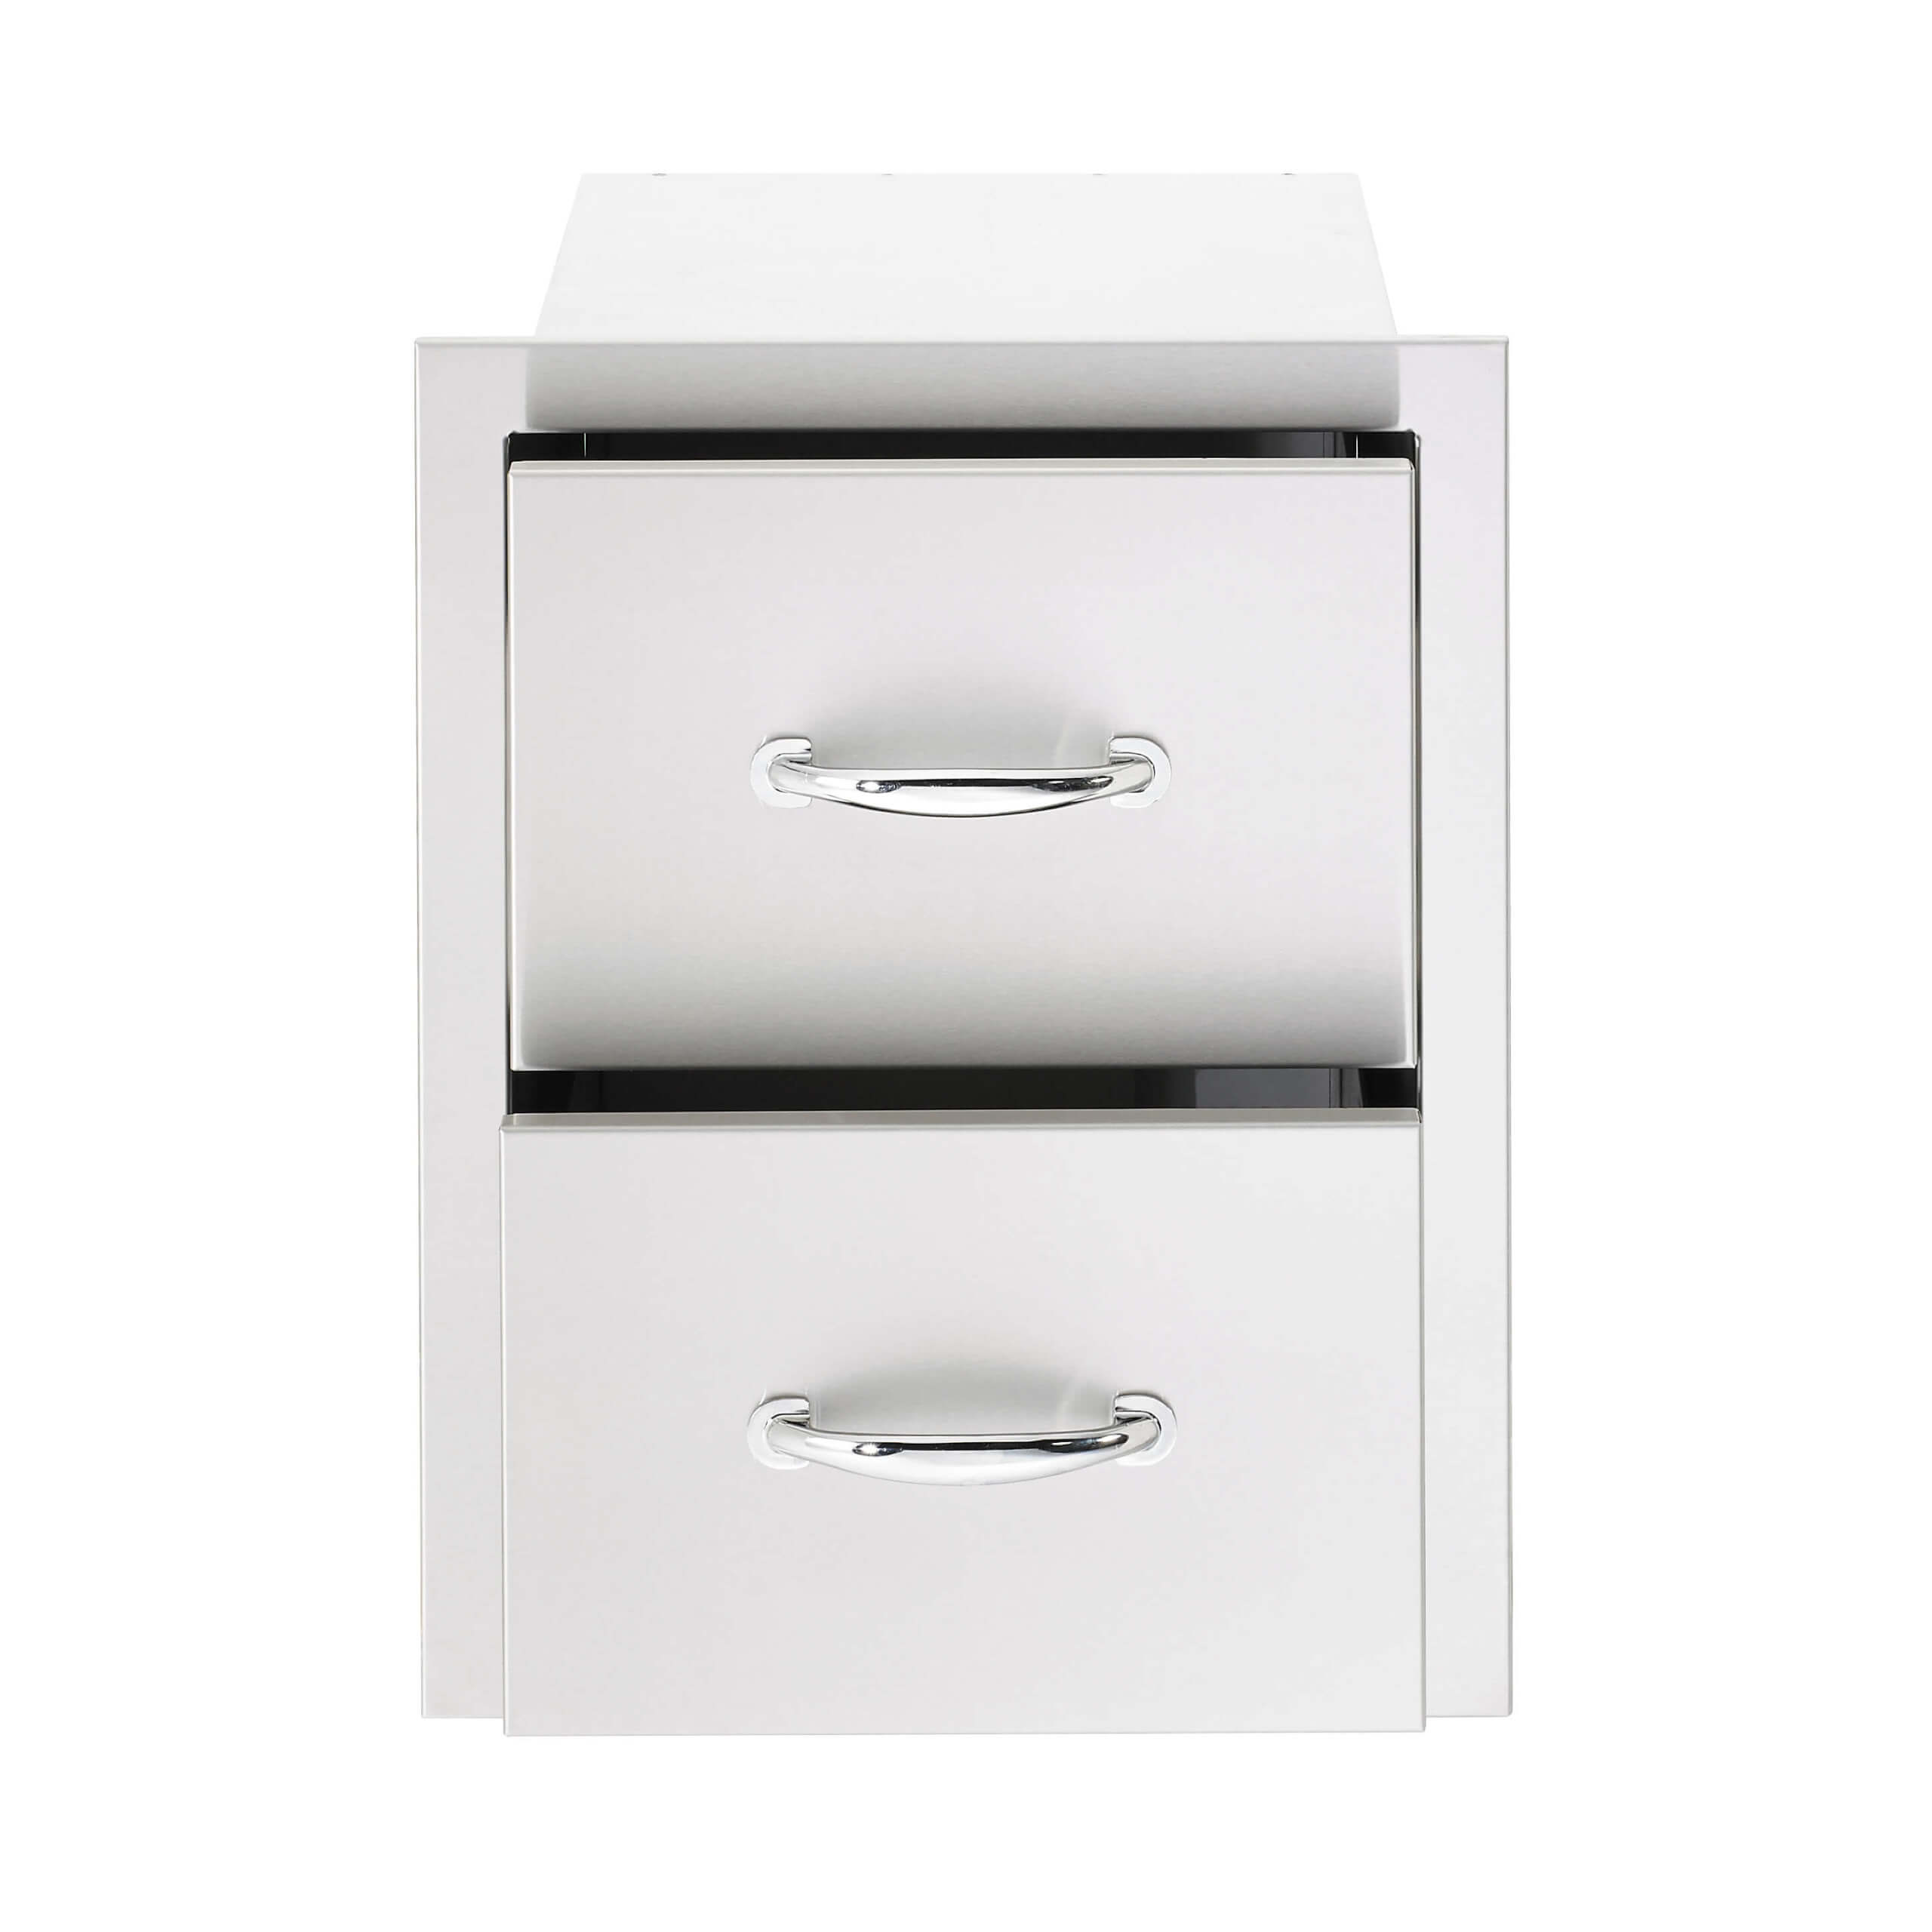 SSDR-double-drawer-sunfire-summerset-outdoor-kitchen-accessories